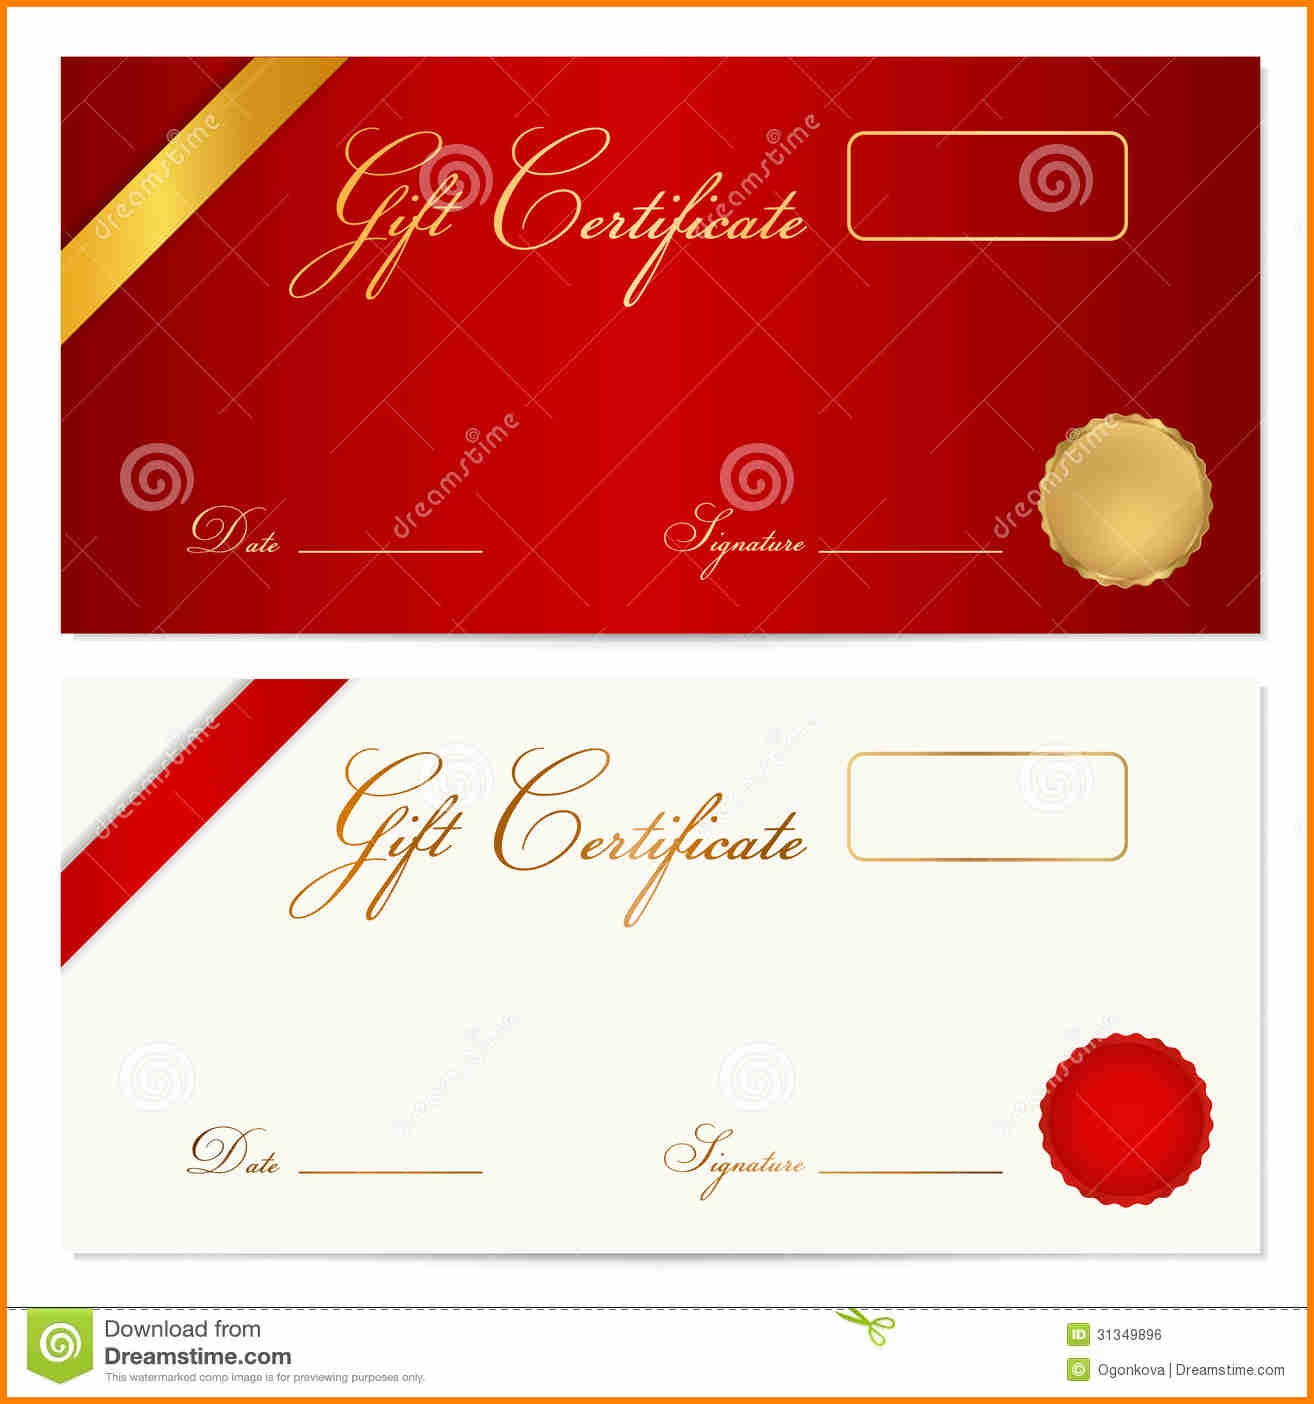 6 Free Gift Voucher Templates Download Quick Askips